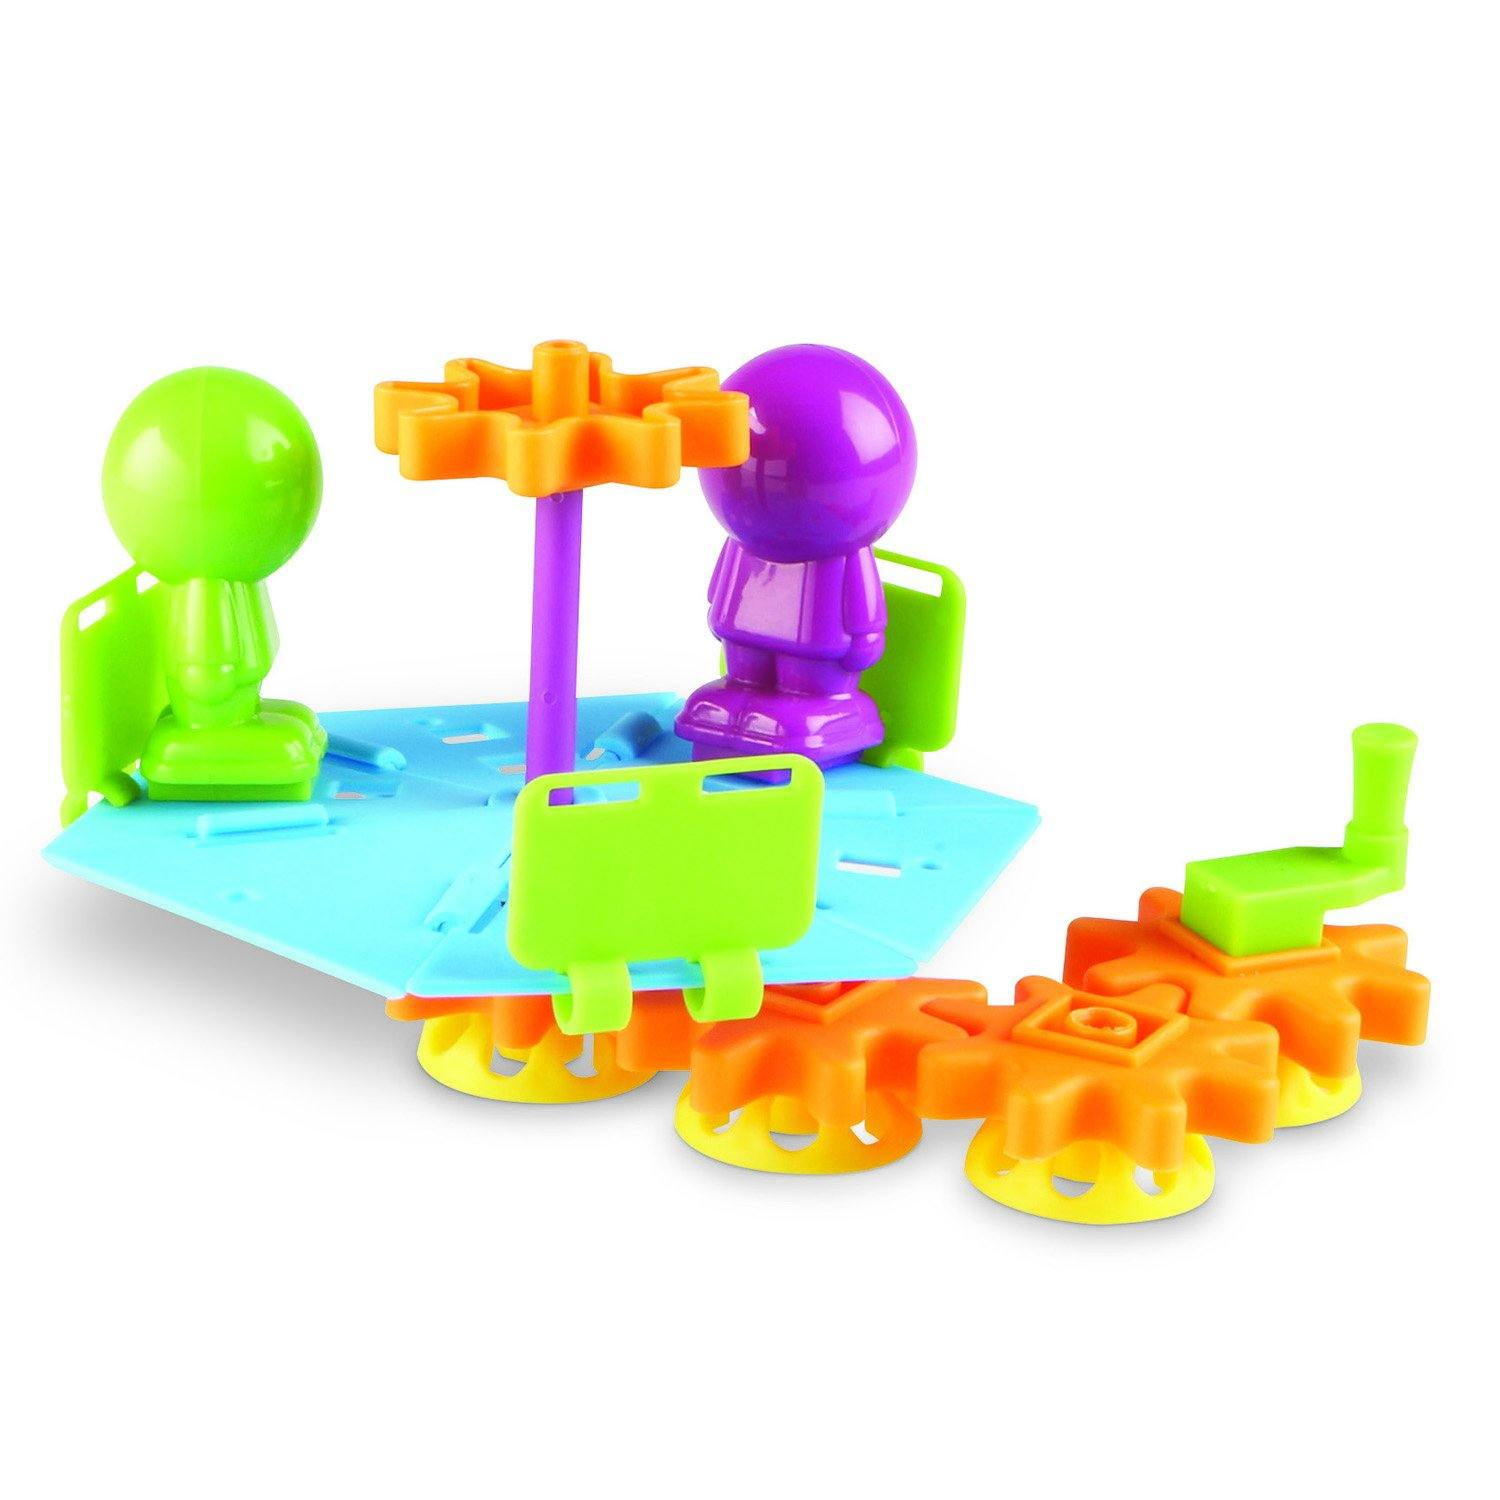 Toy roundabout set